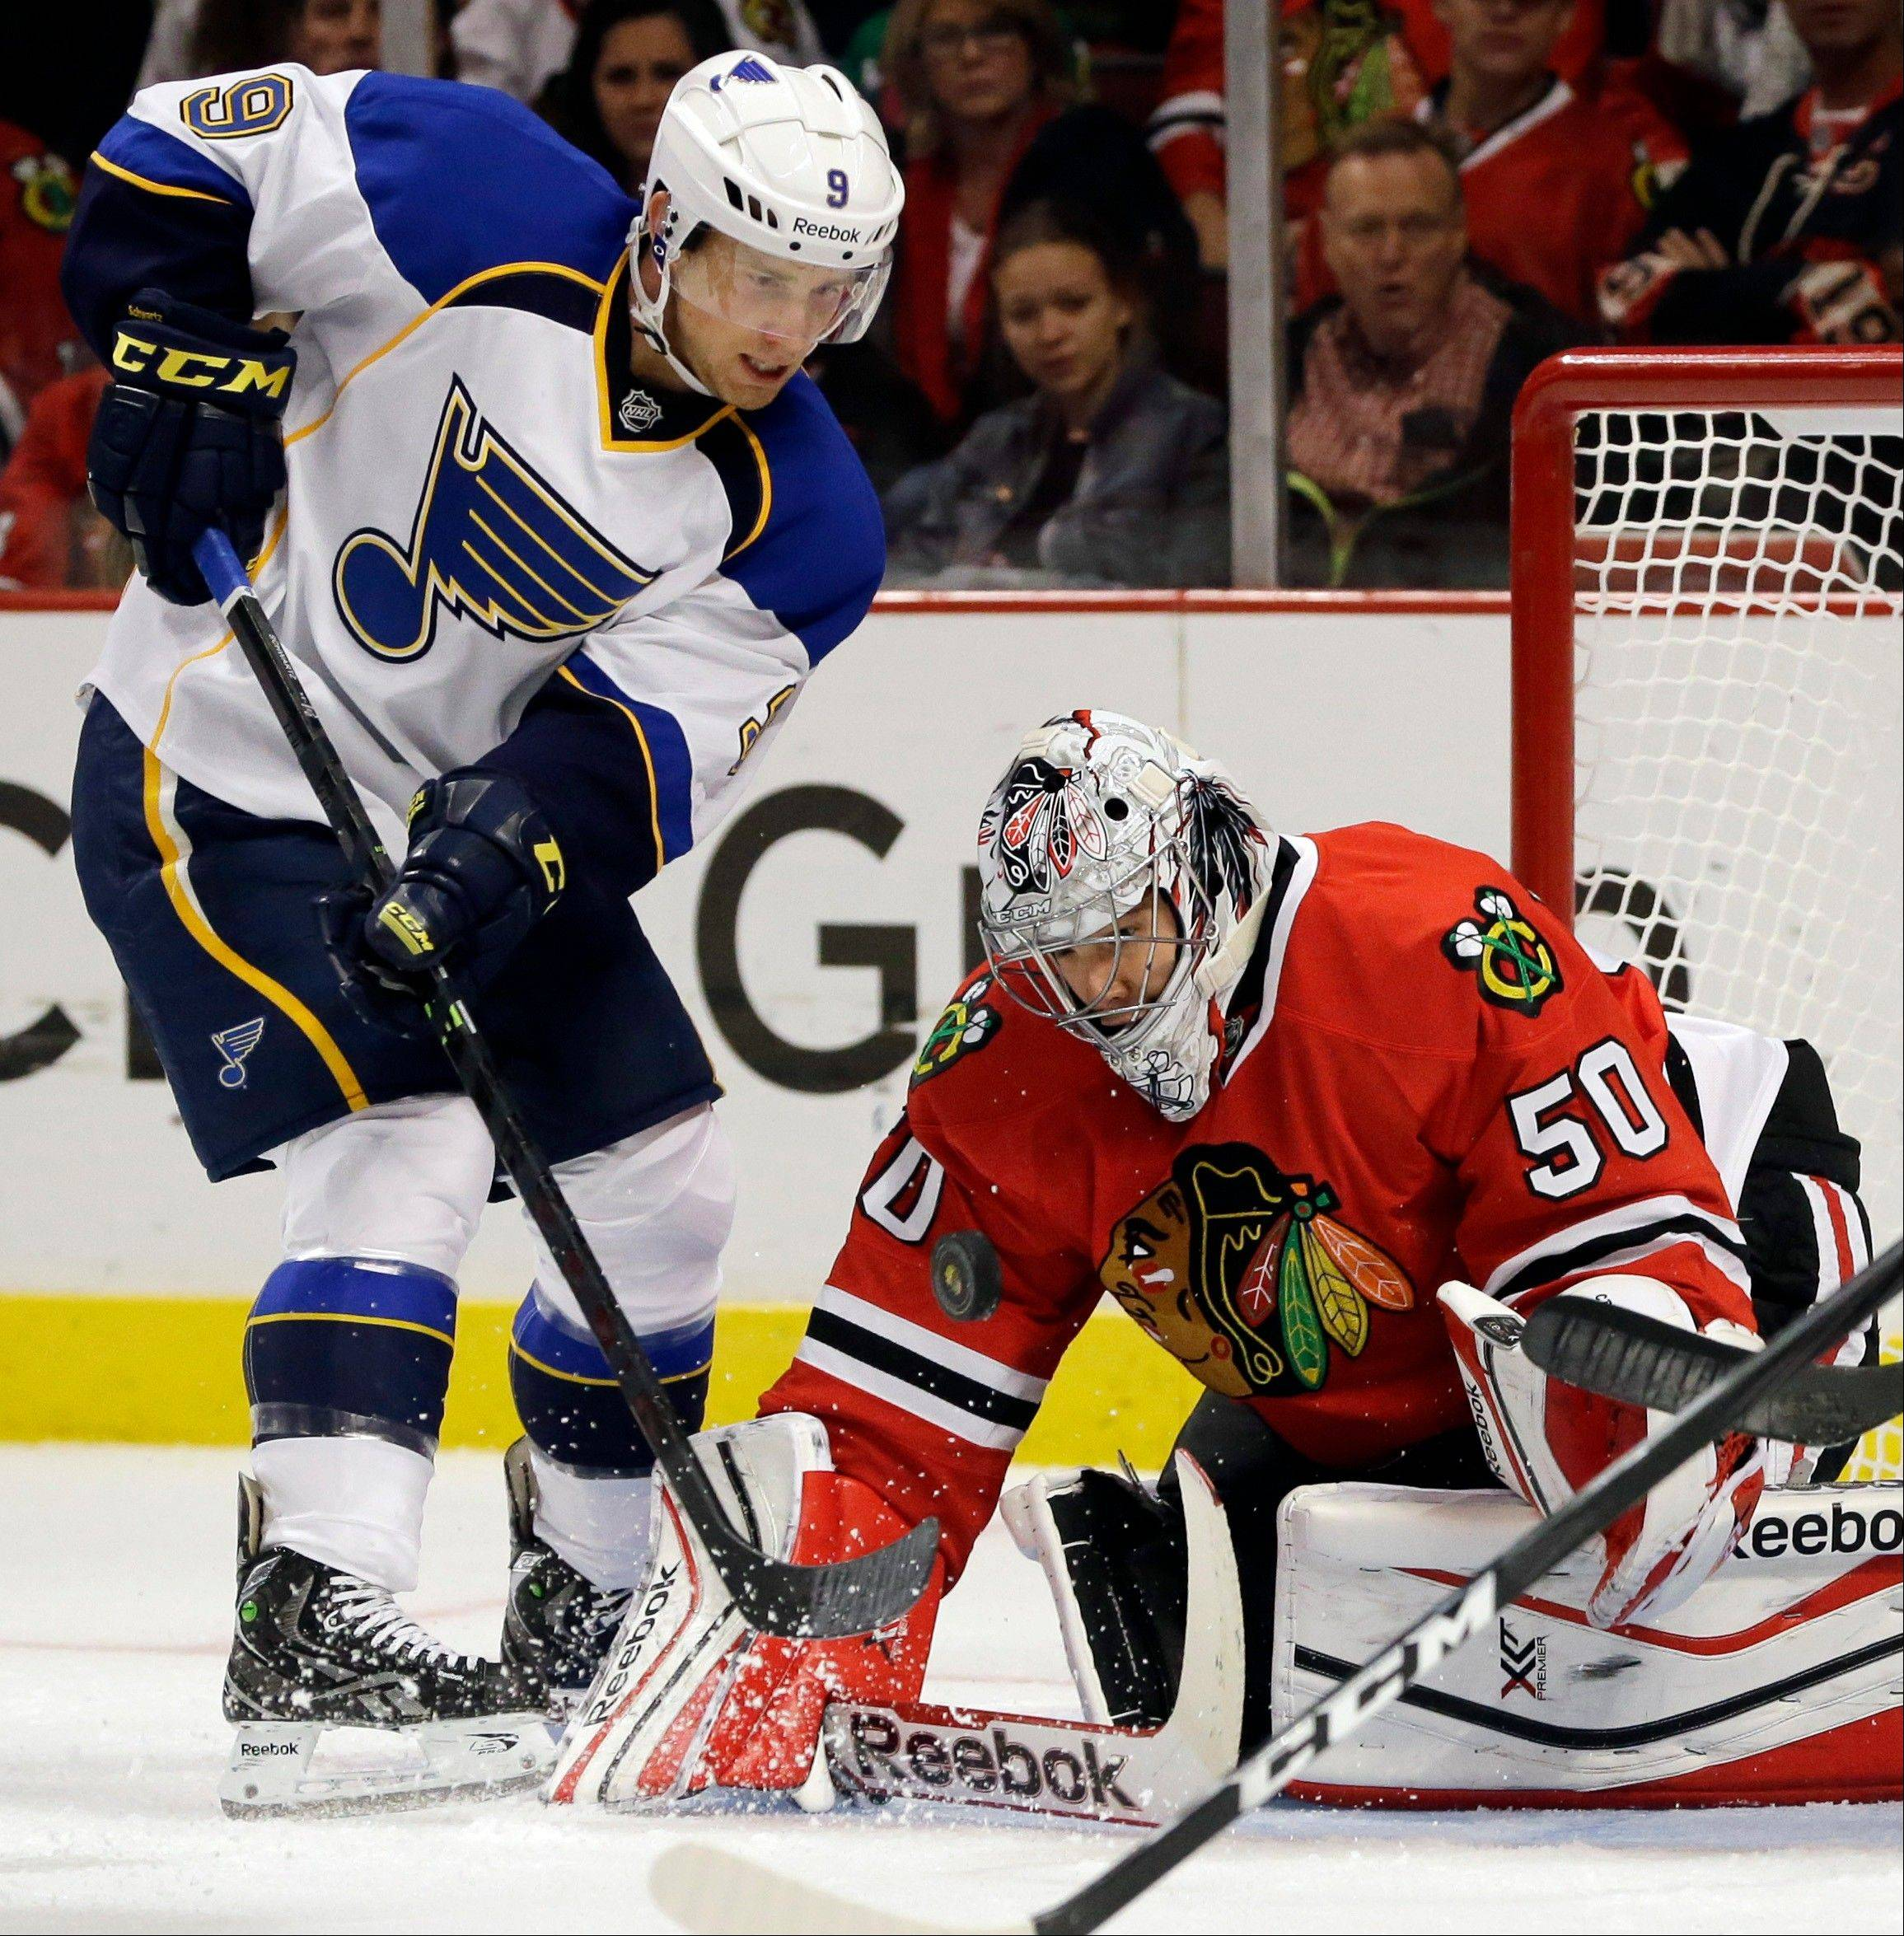 Blackhawks goalie Corey Crawford, as sharp as can be through the first eight games of the season, blocks a shot by the Blues' Jaden Schwartz last week.